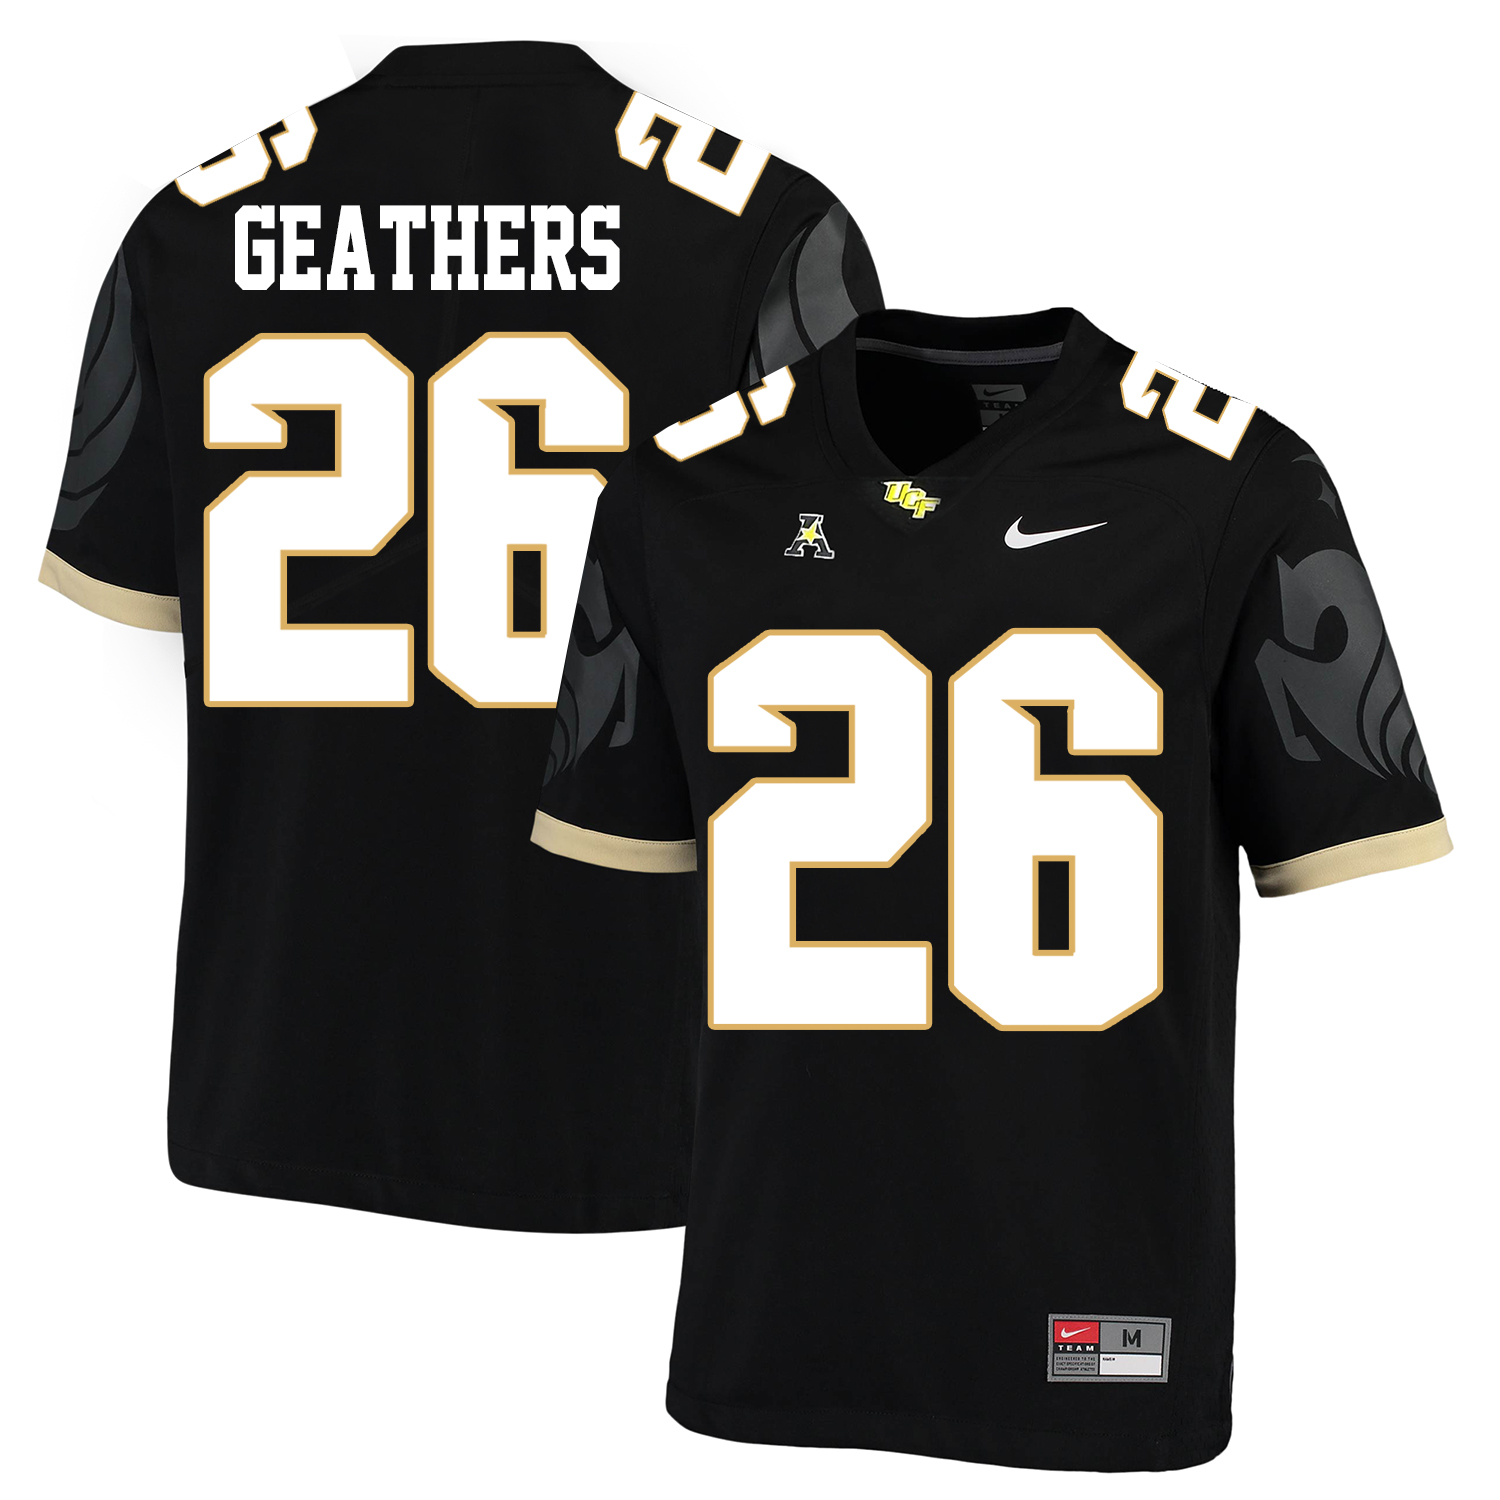 UCF Knights 26 Clayton Geathers Black College Football Jersey